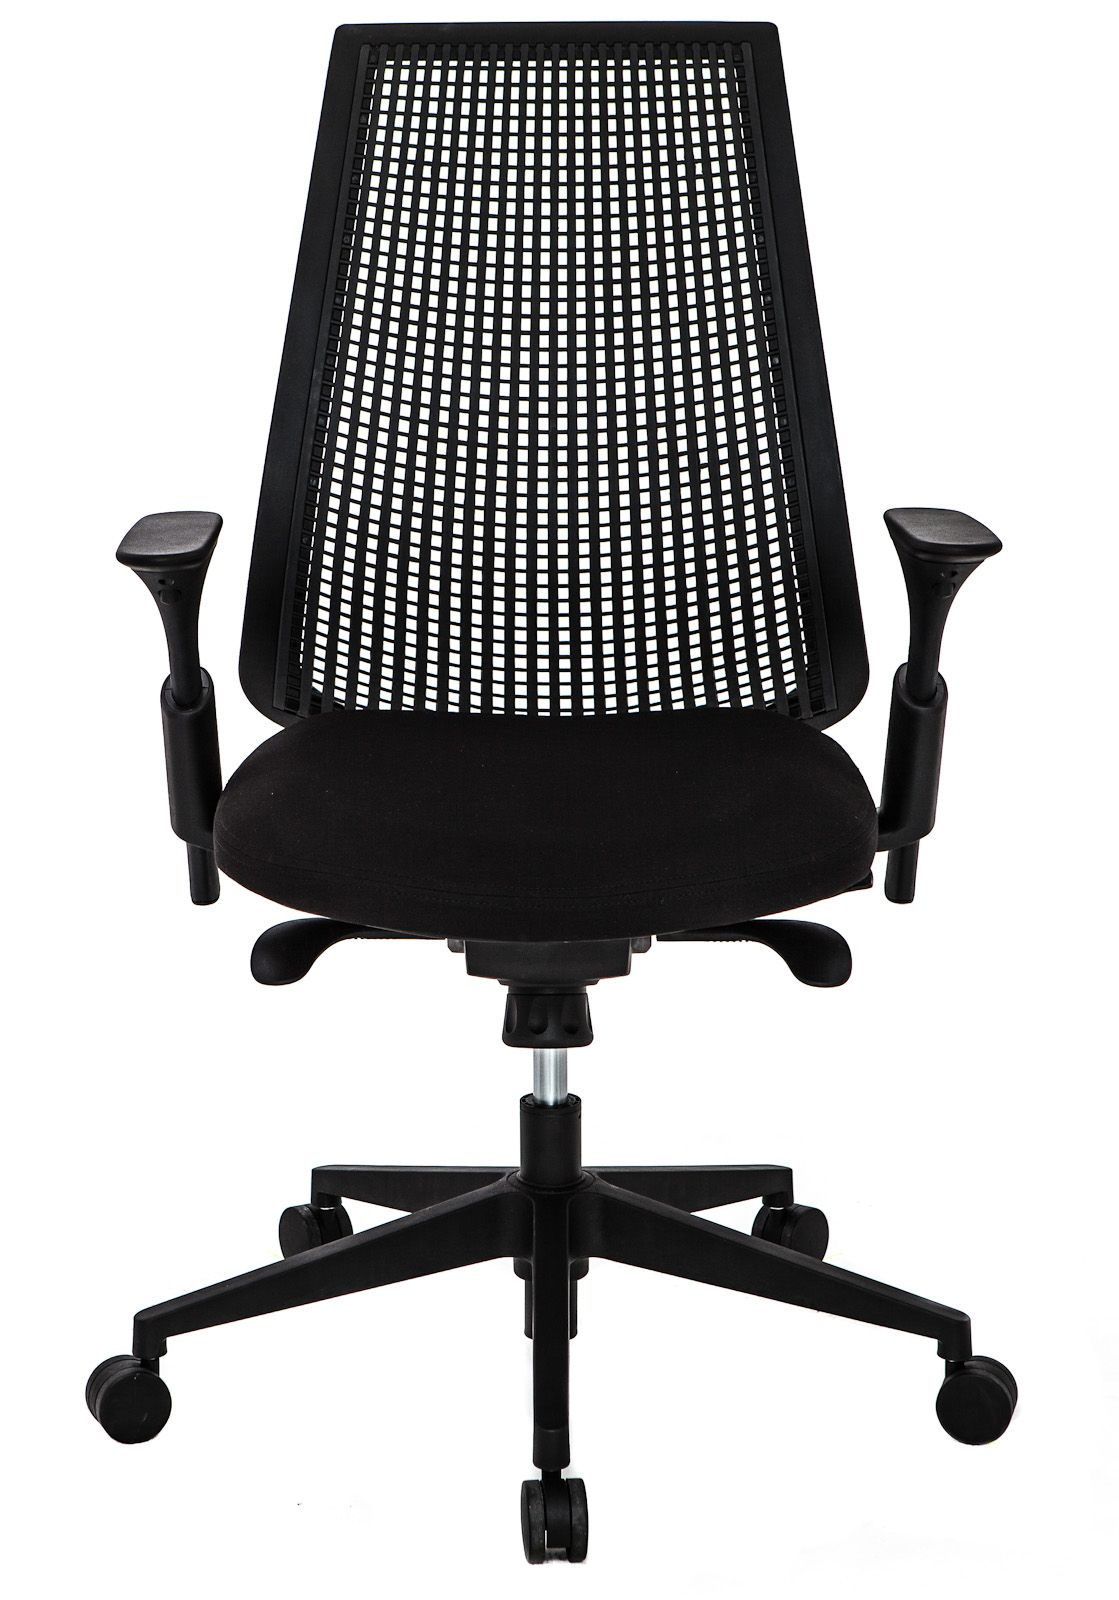 Introducing Series 8 Black Mesh Office Chair Buy Your